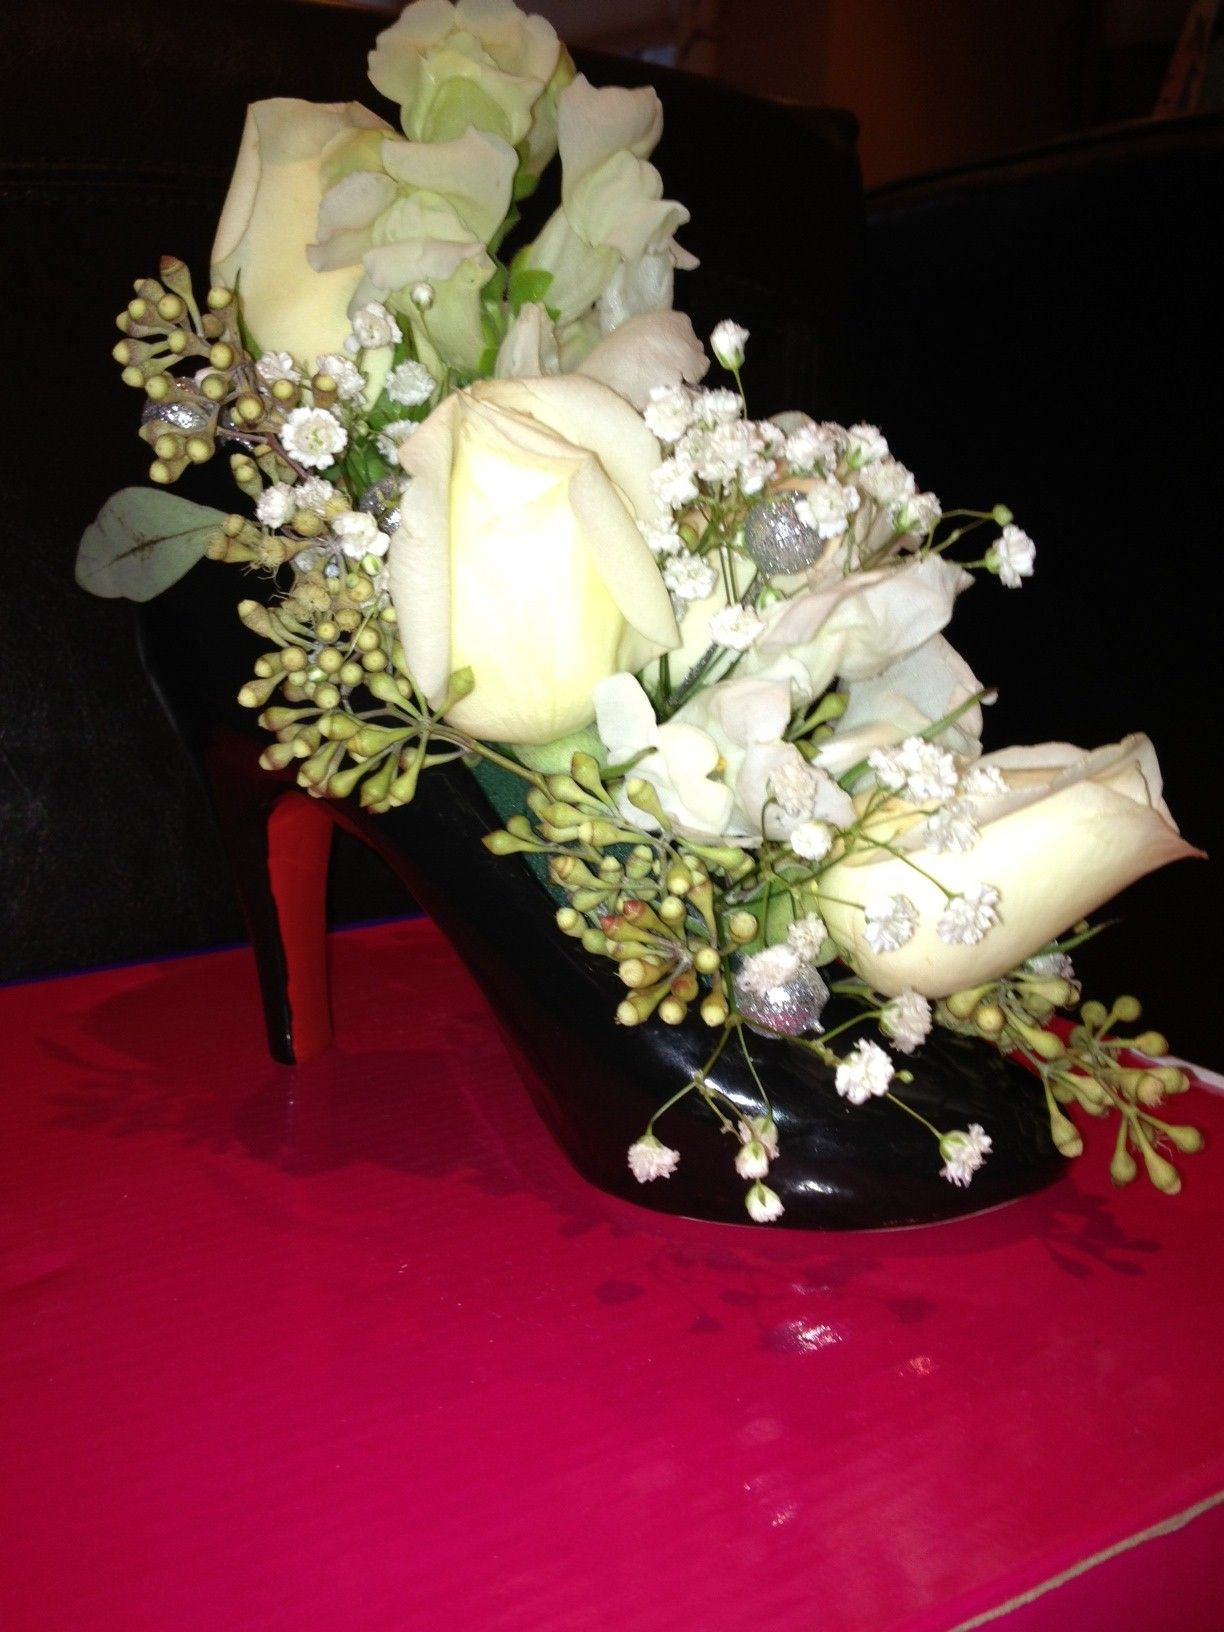 Ceramic High Heel Shoe Vase Floral centerpiece and table